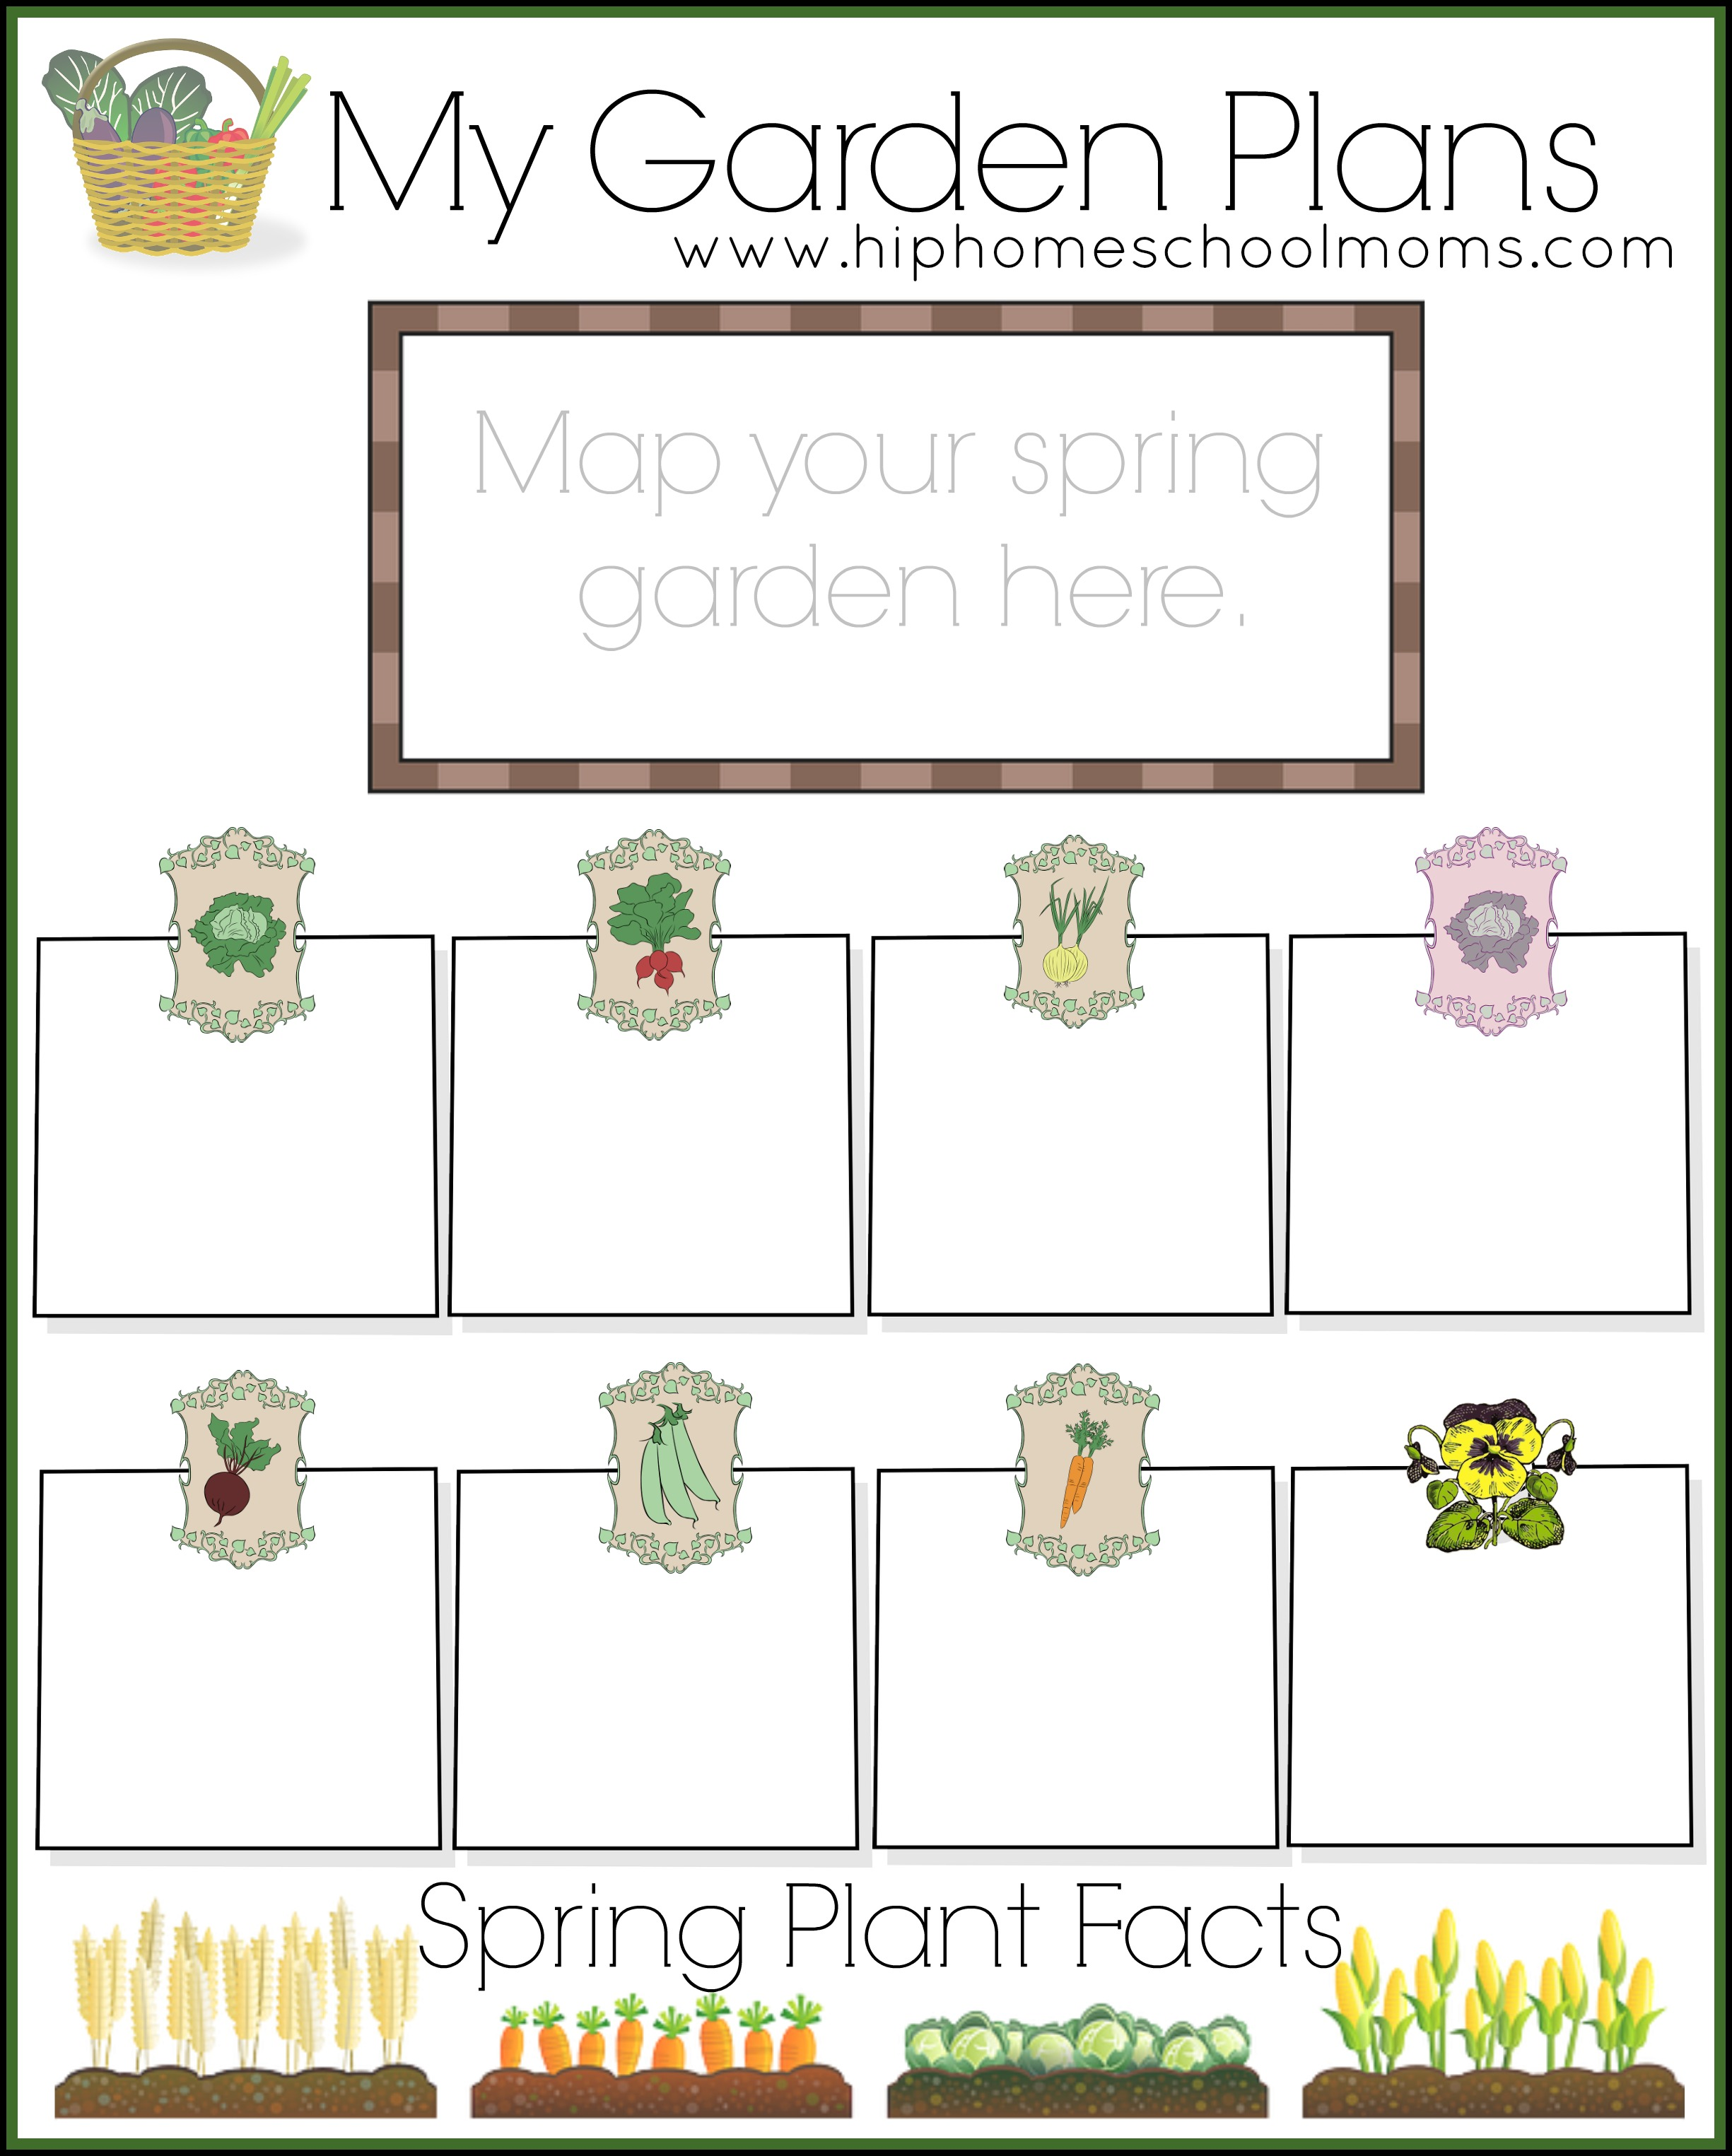 Free garden planner for kids hip homeschool moms for Garden planner 3